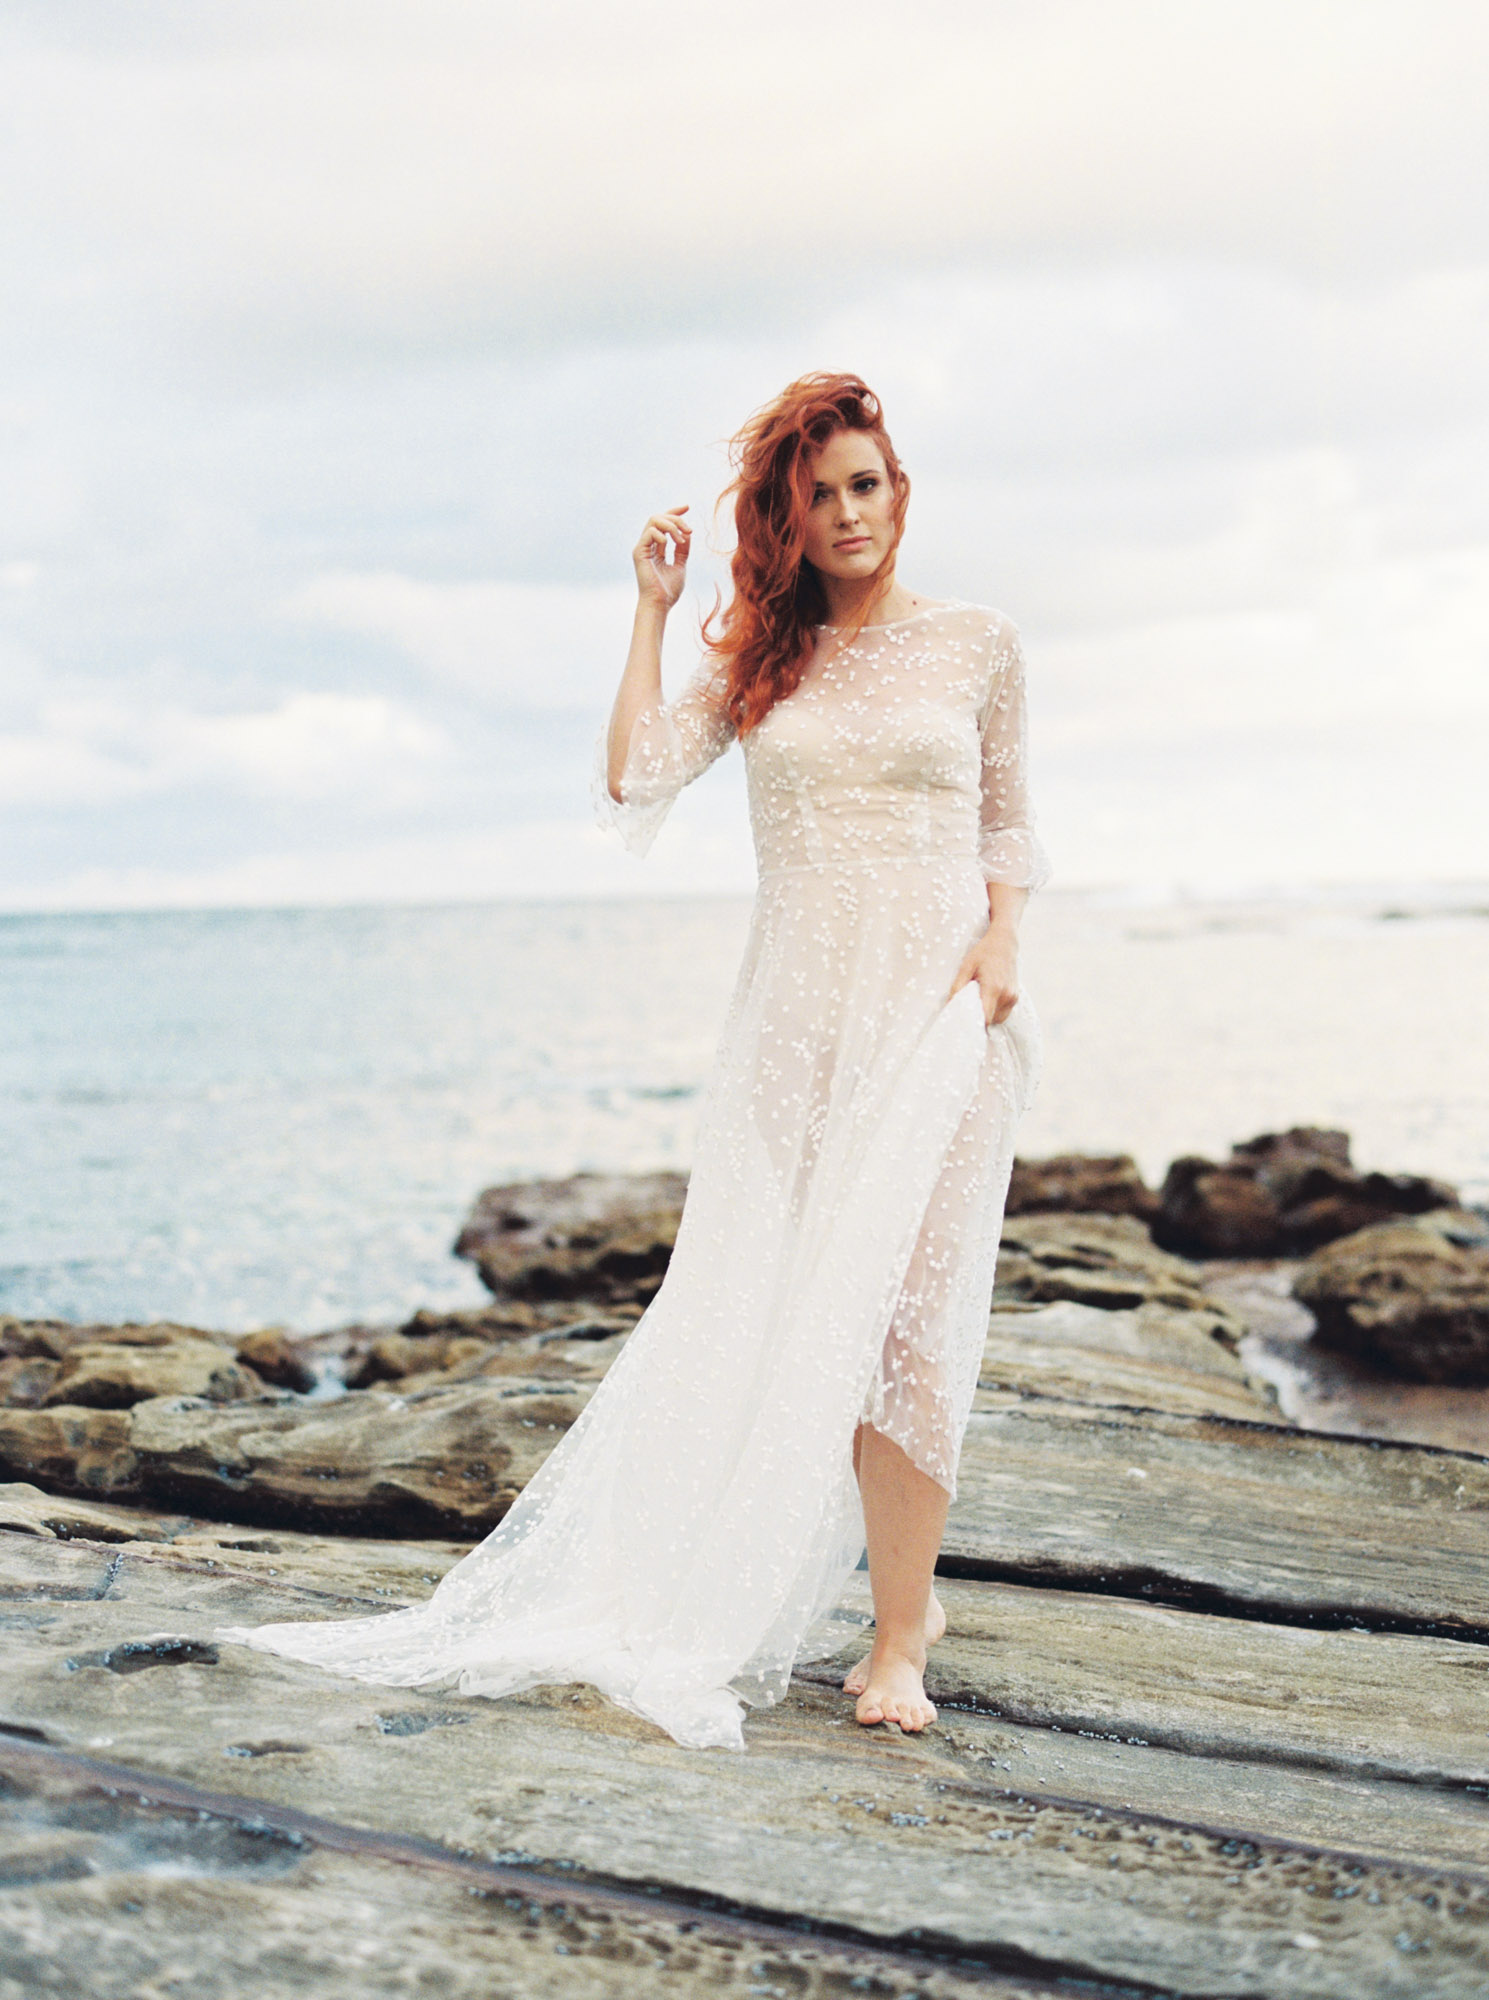 00049- Fine Art Film Newcastle NSW Wedding Photographer Sheri McMahon.jpg